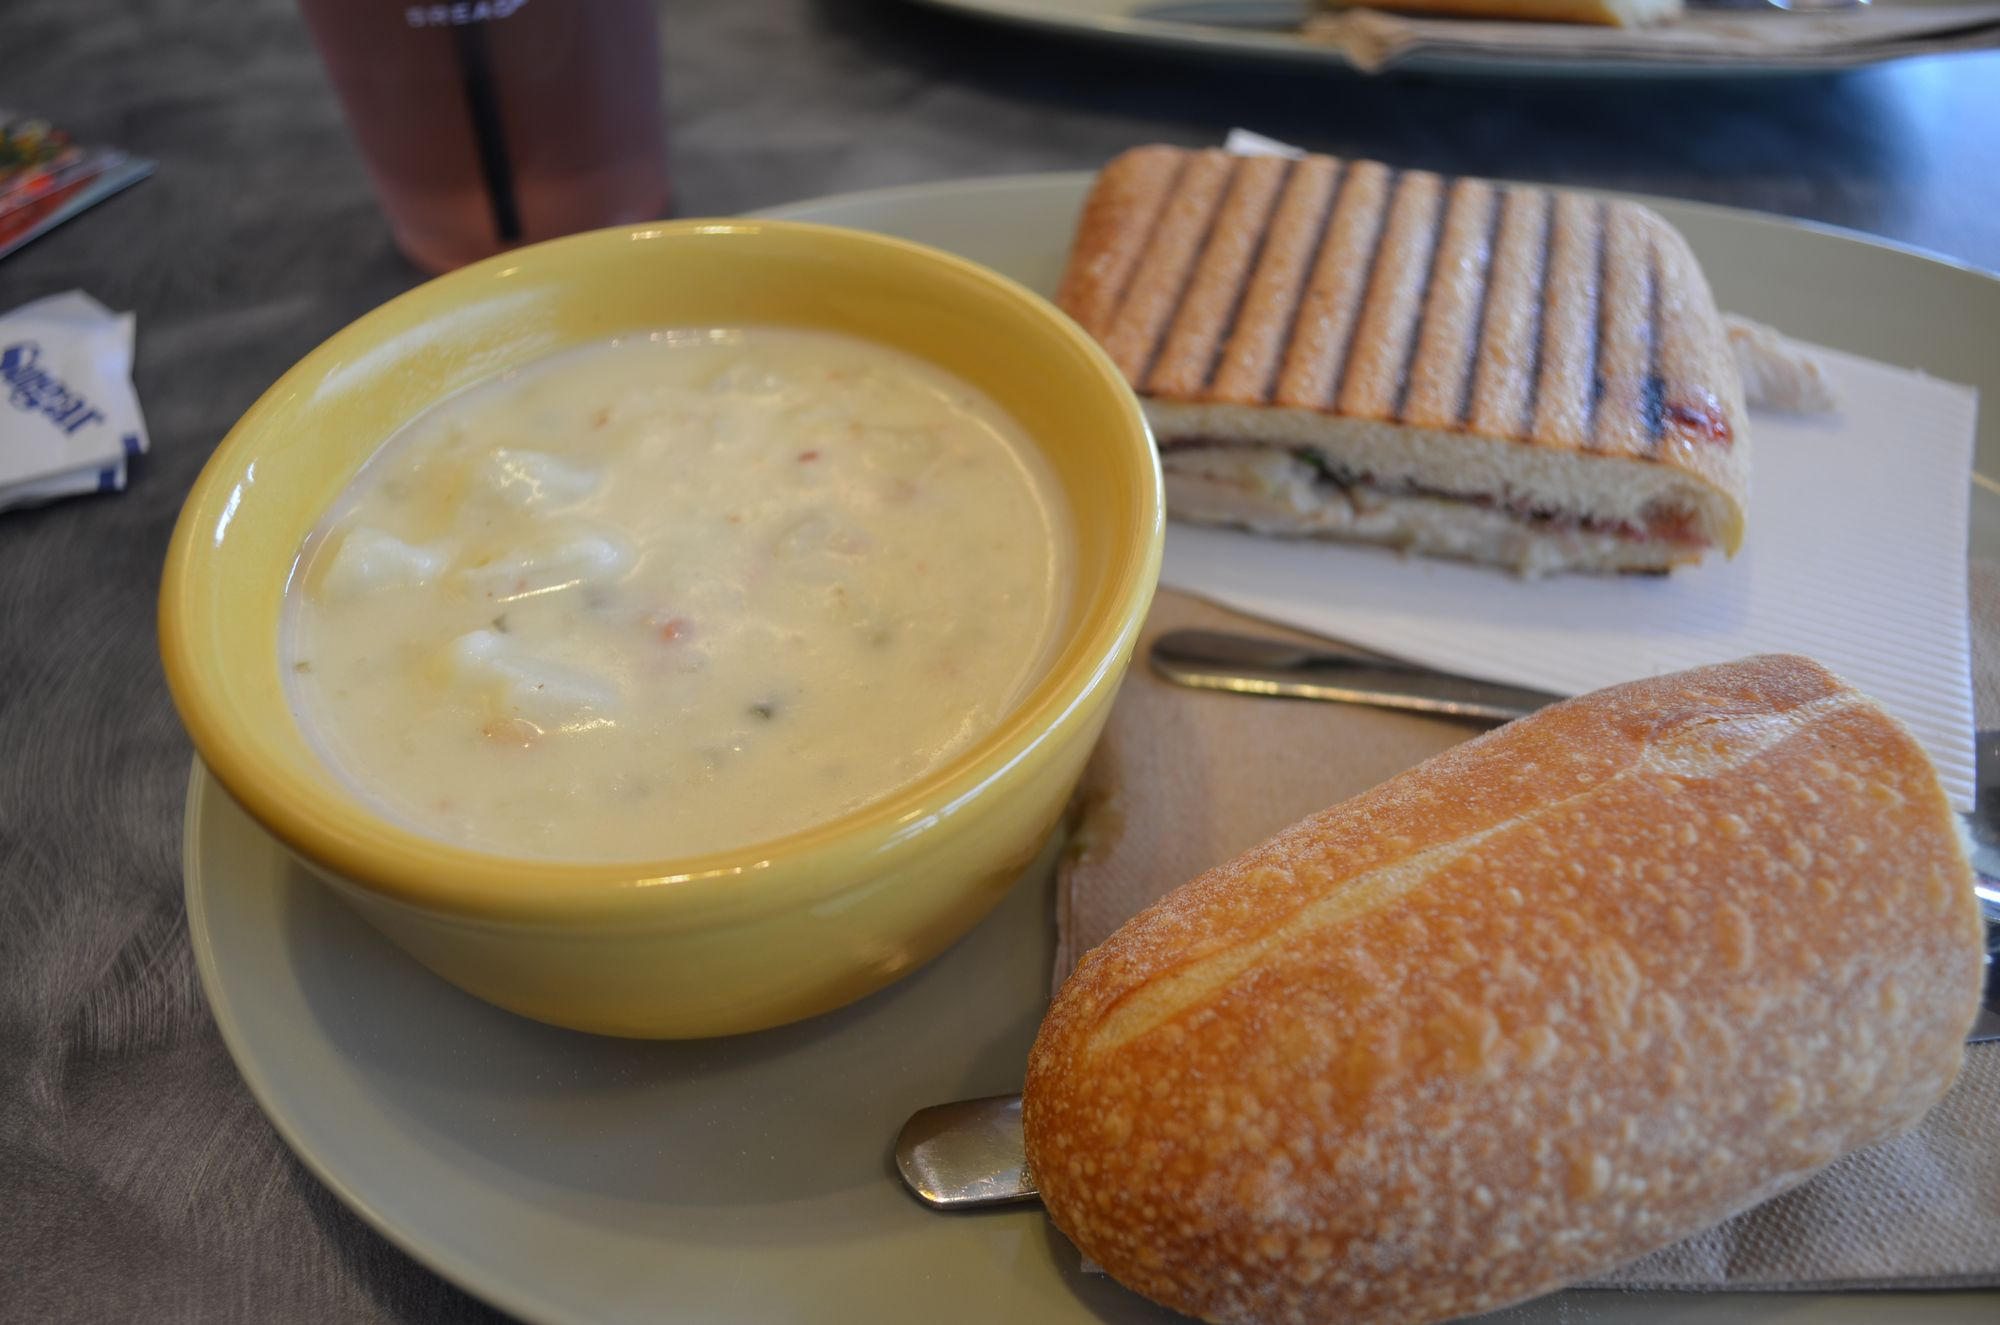 Panera Baked Potato Soup and Roasted Turkey & Cranberry Panini